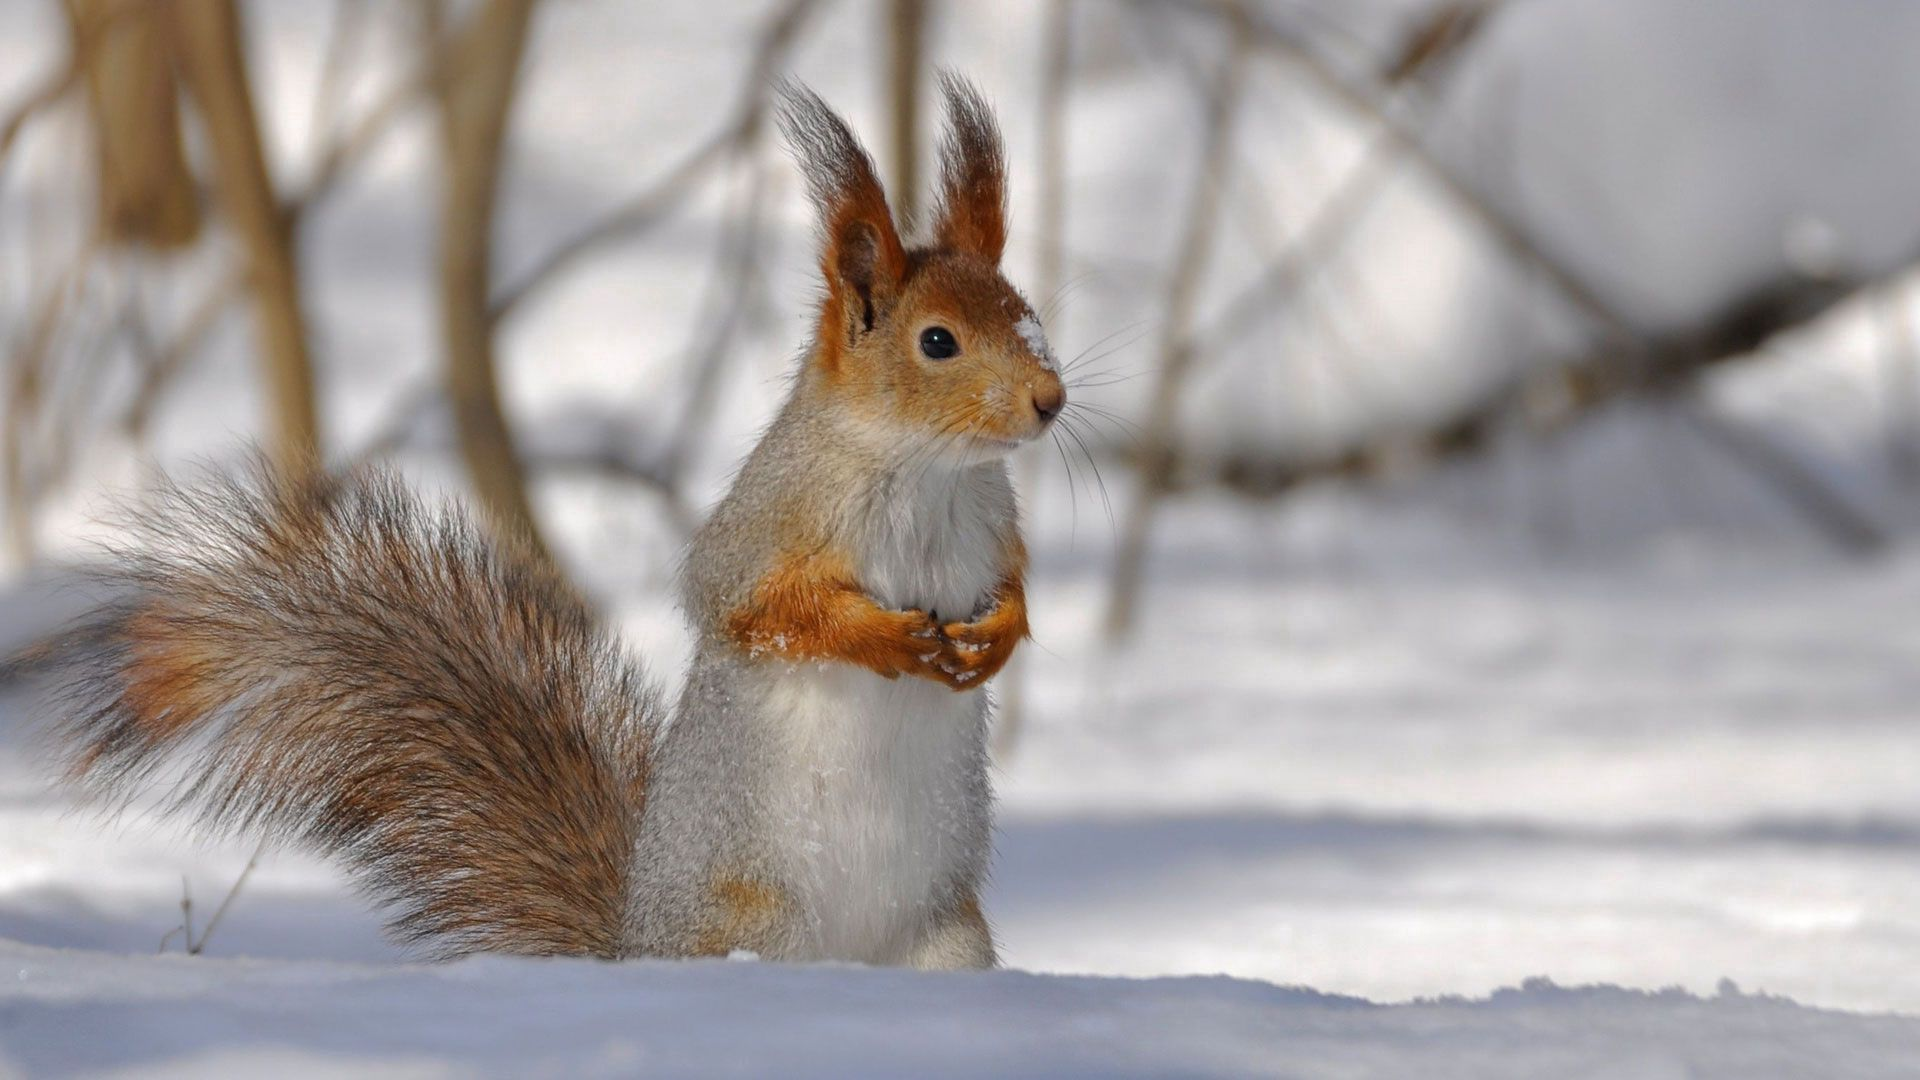 Download mobile wallpaper Animals, Winter, Squirrel, Snow, Branches, Tail for free.